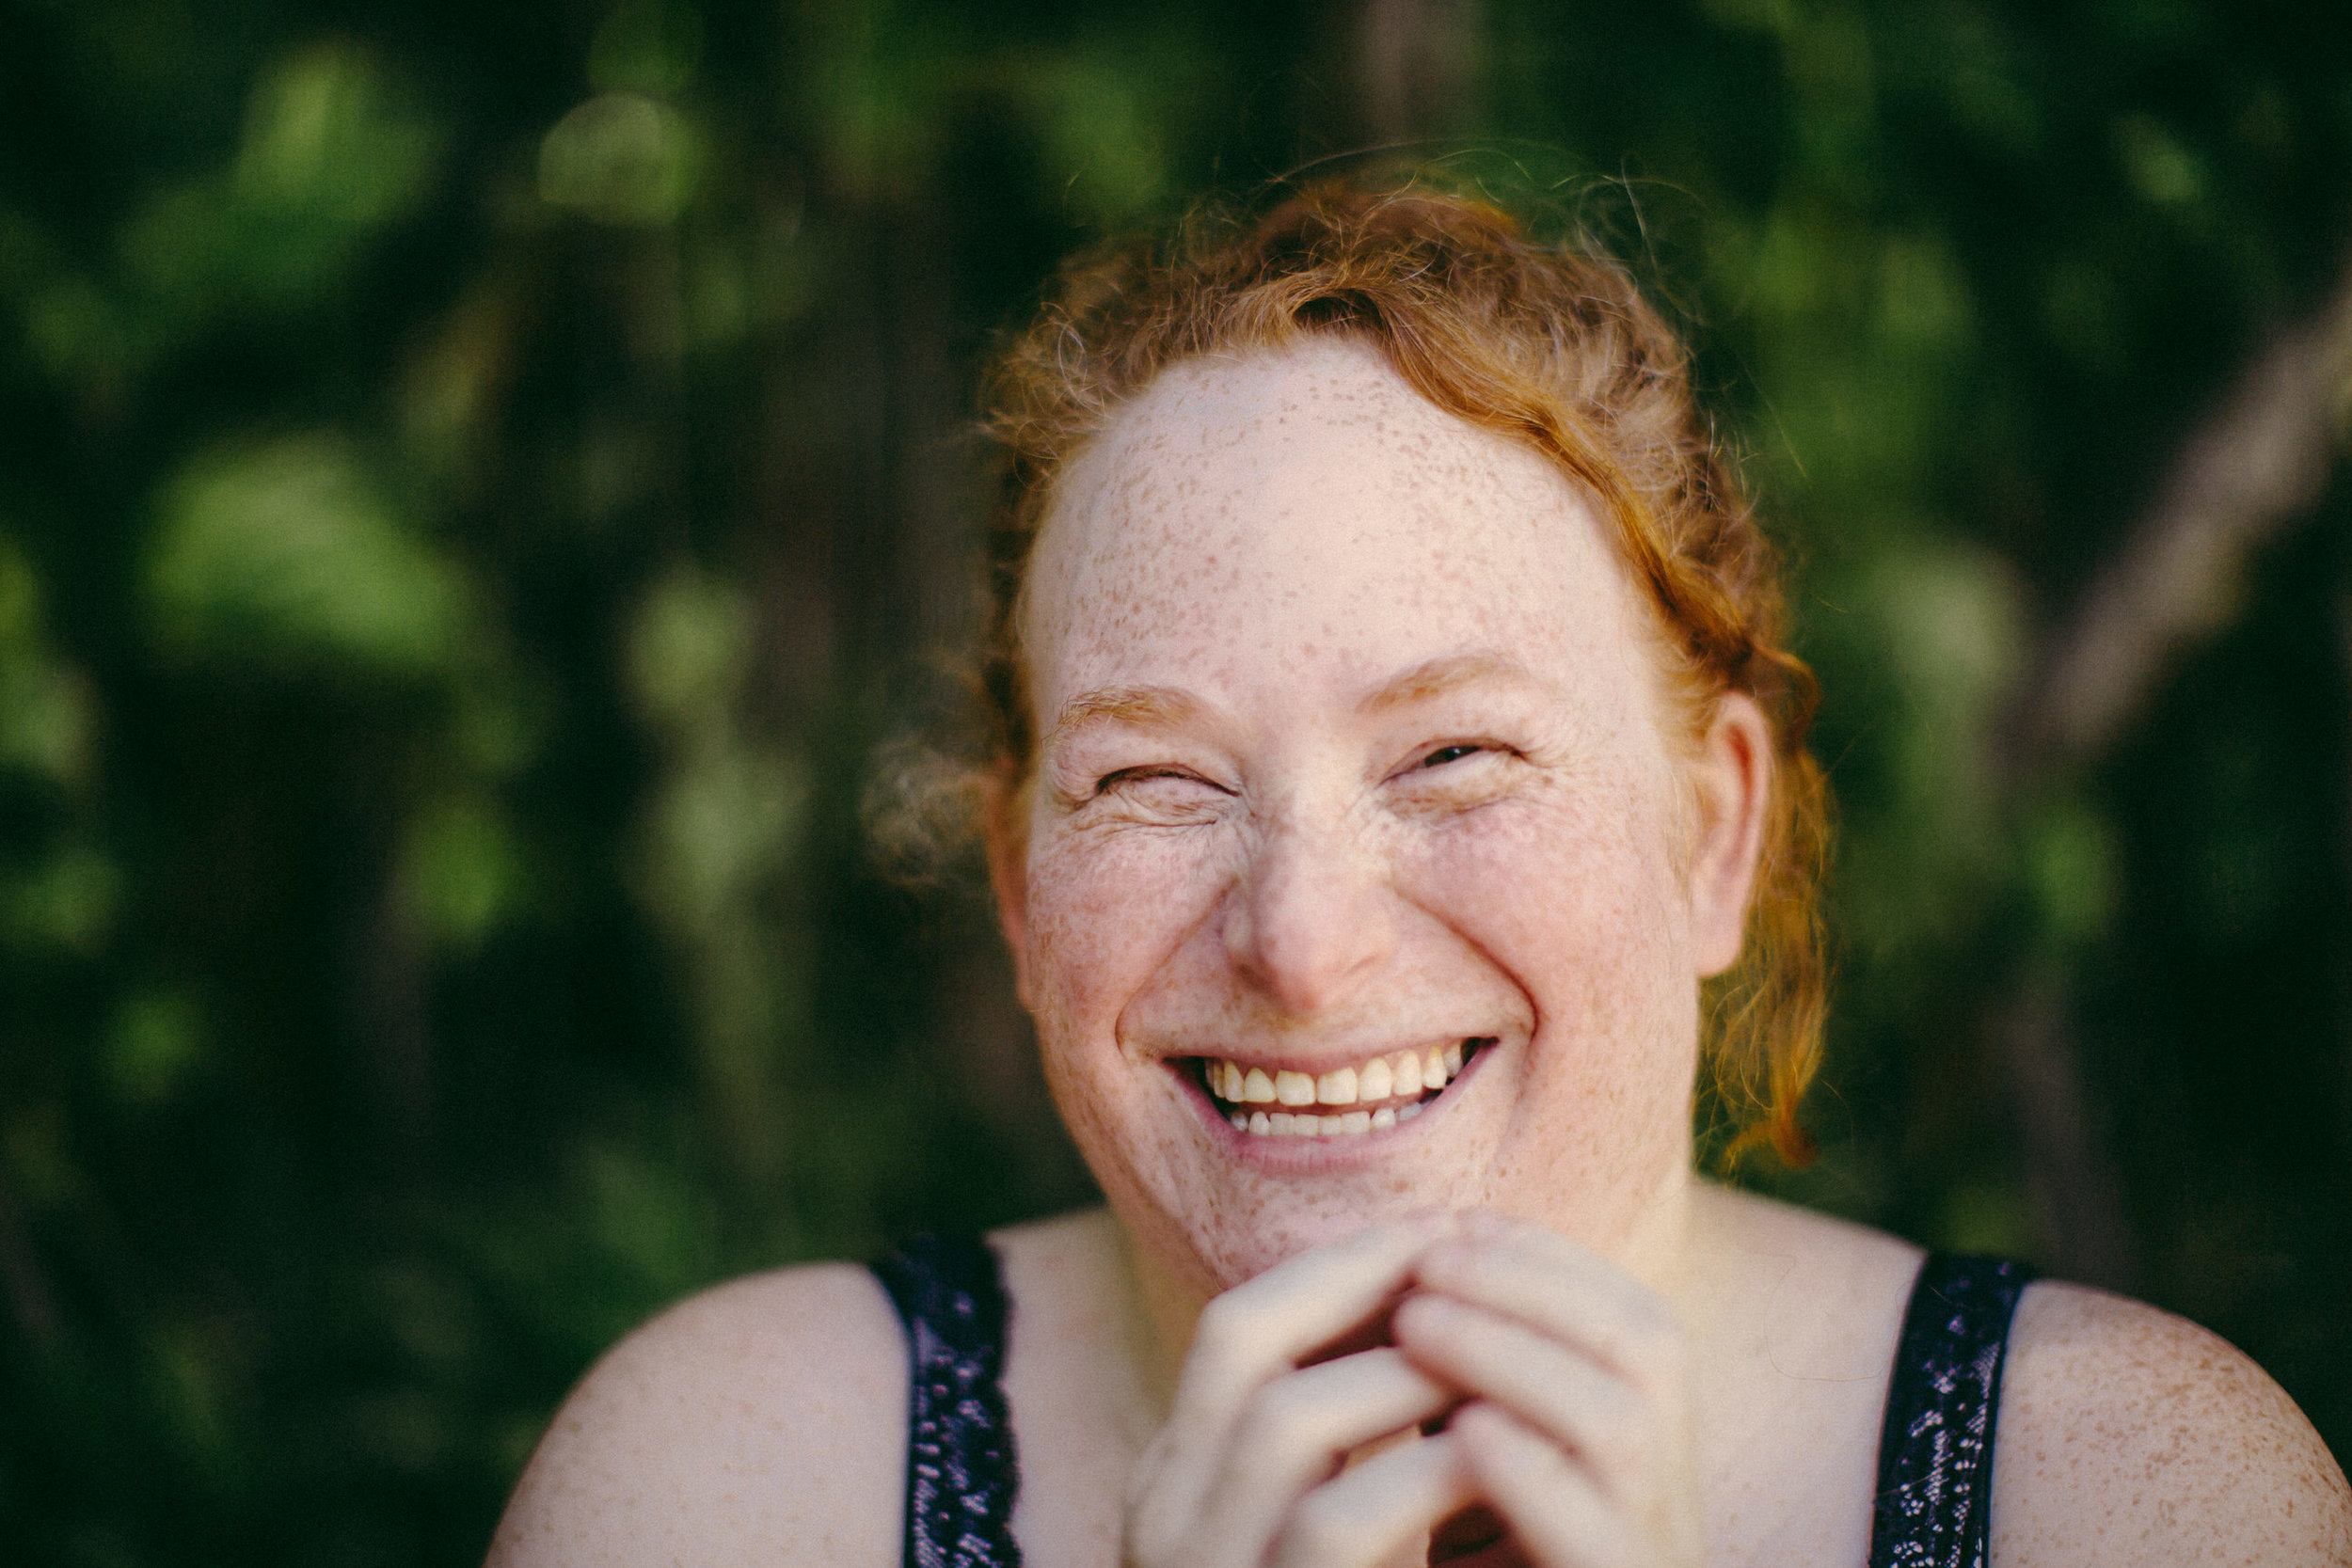 redhead-laughing-portraits-fort-lauderdale-tiny-house-photo-branding-lifestyle-photographer.jpg